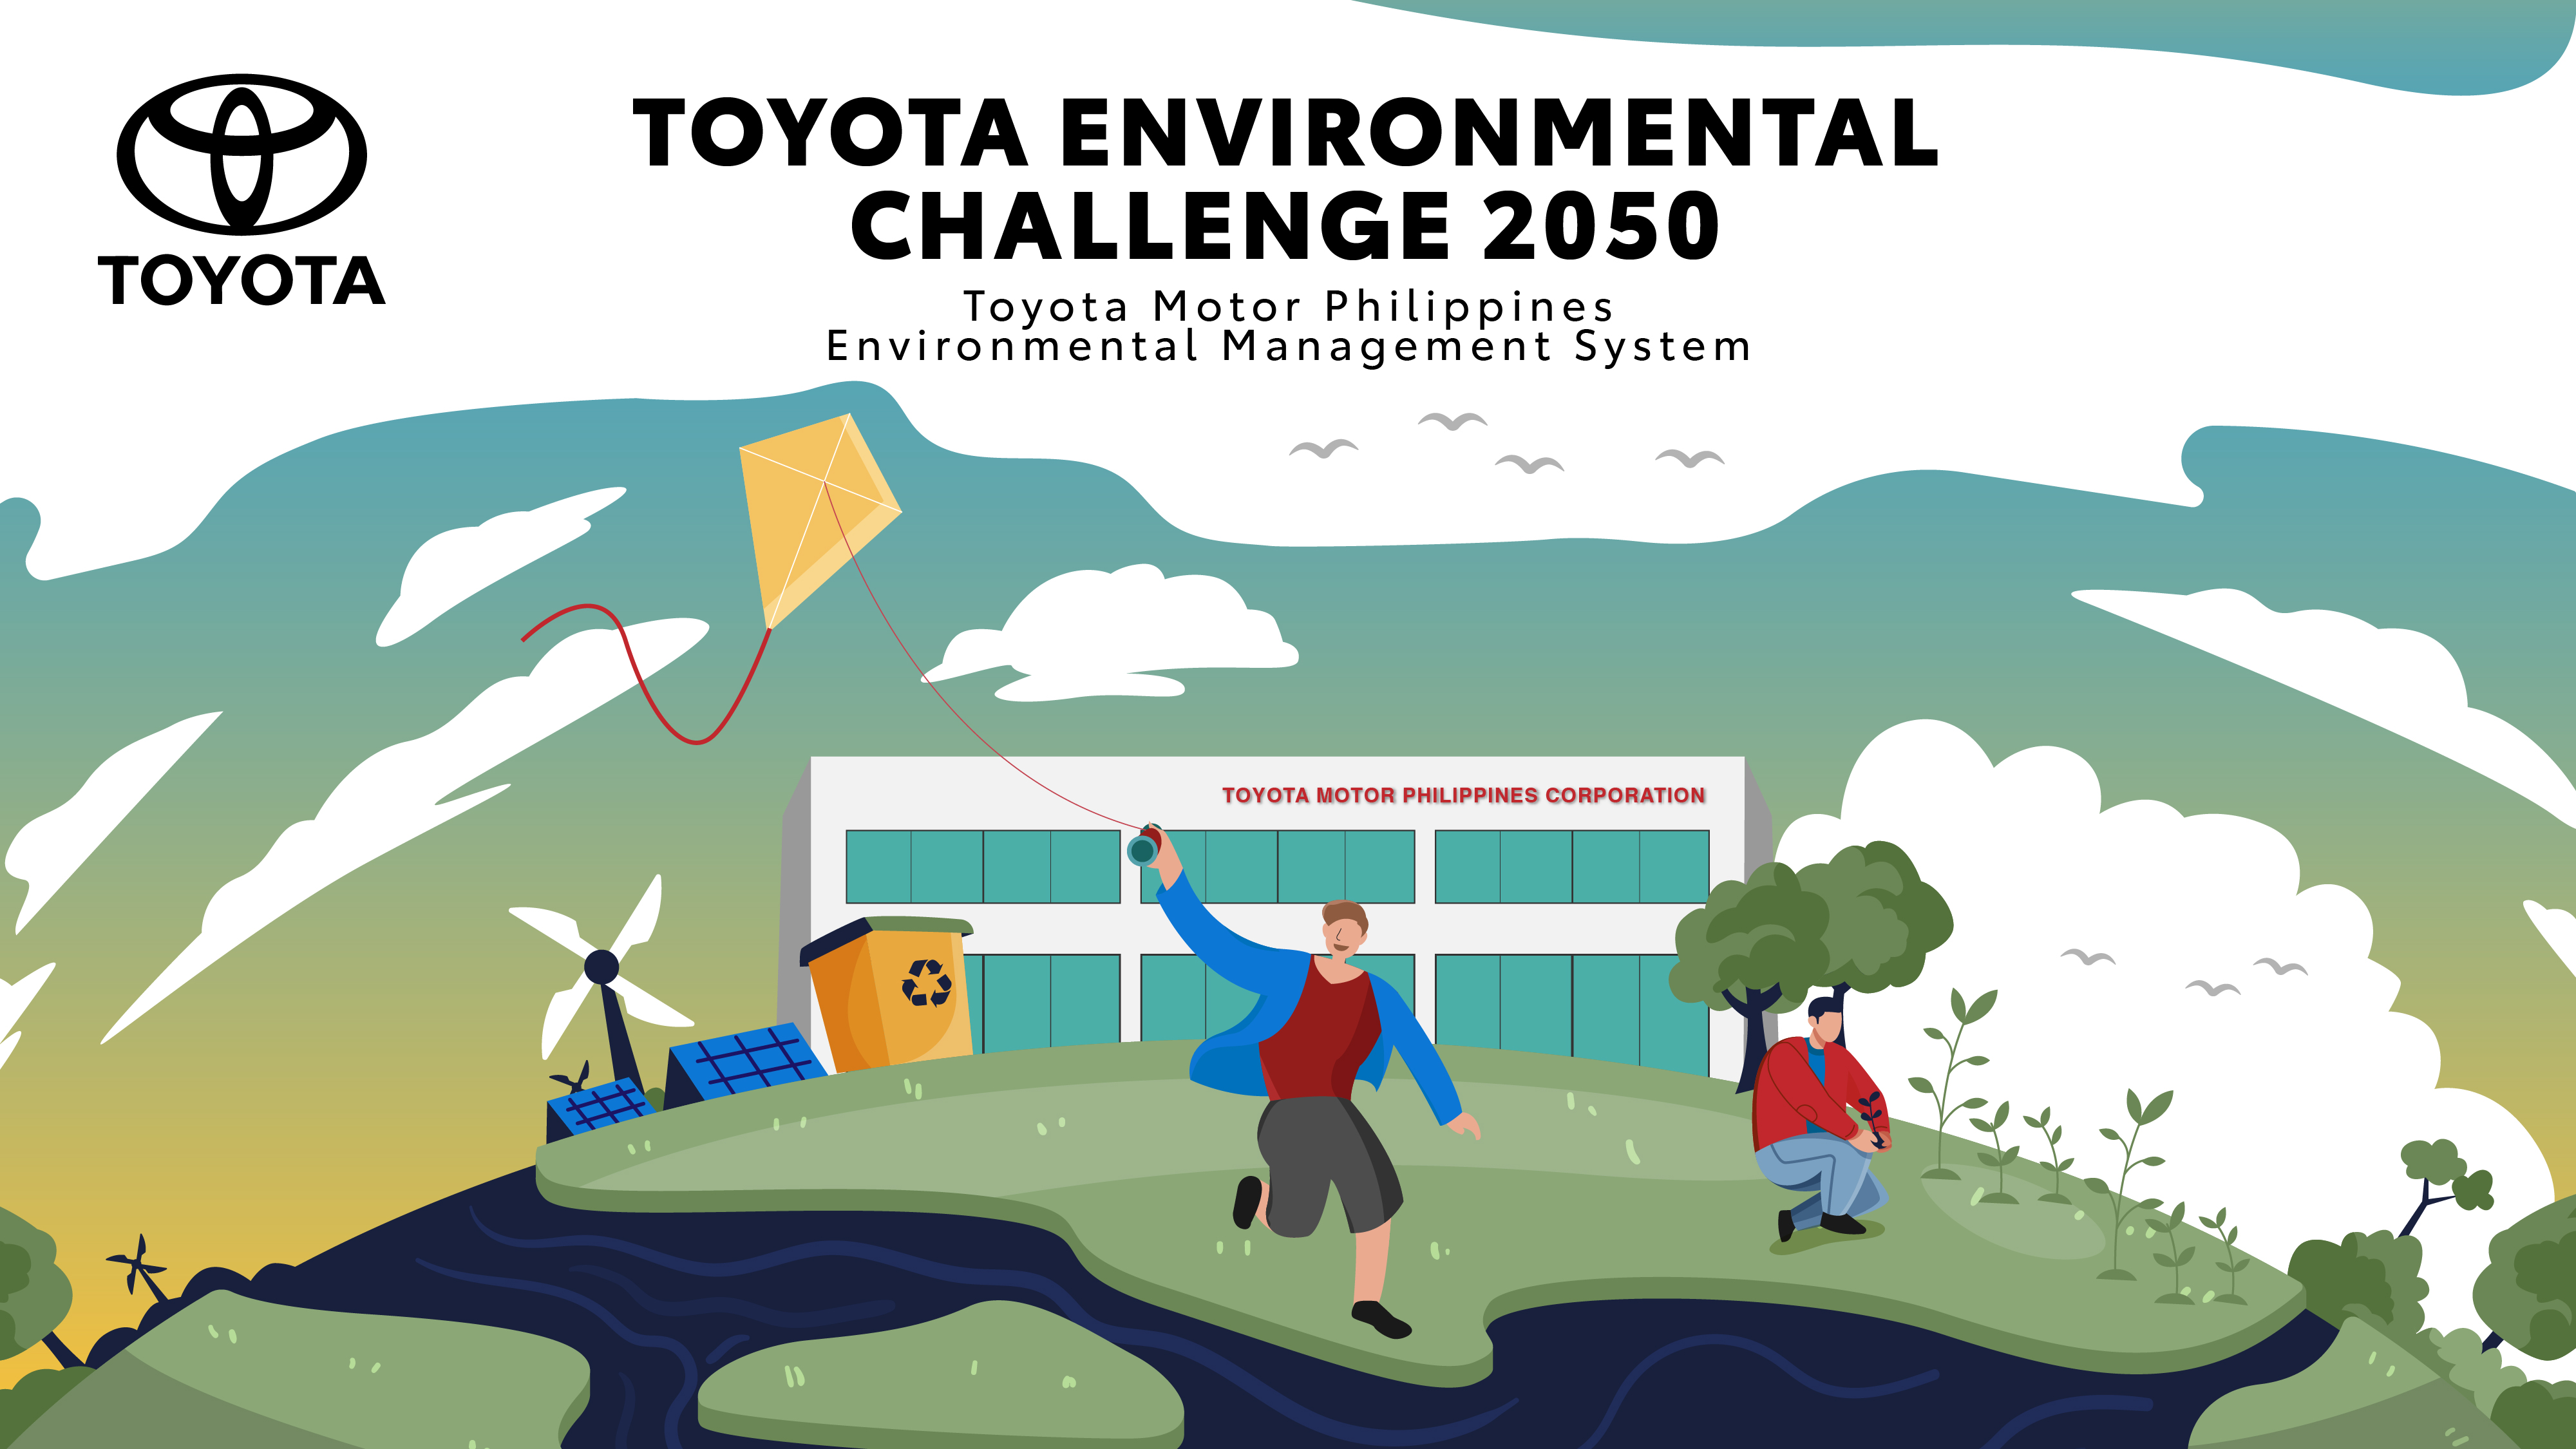 Toyota Motor Philippines pursues environment protection by Thinking Globally, Acting Locally